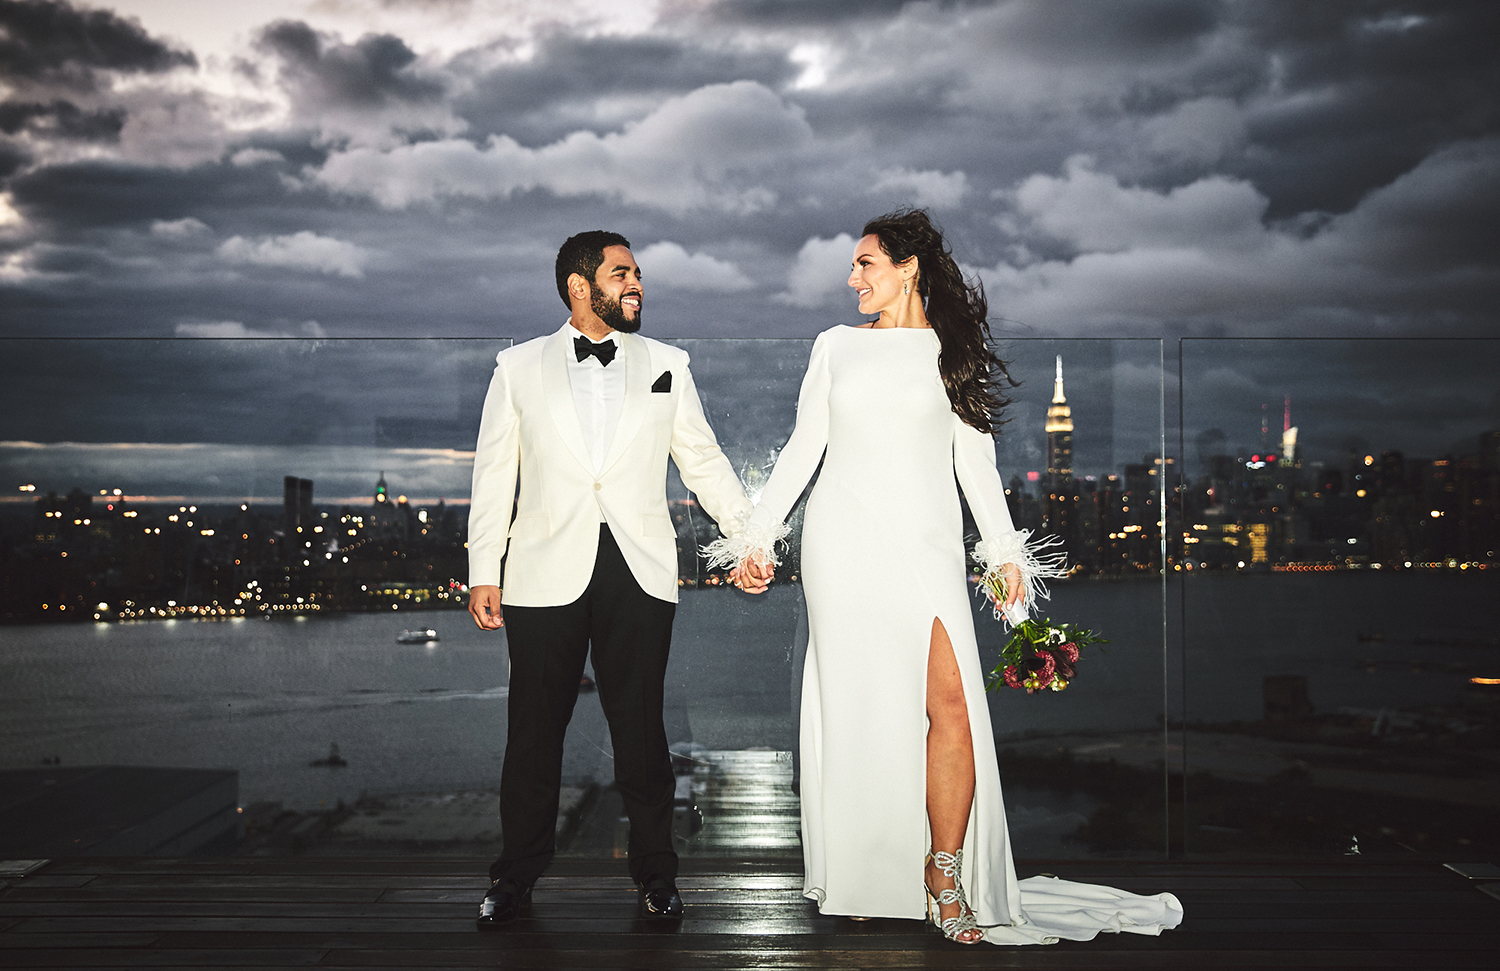 170930_WilliamValeWeddingPhotography_BrooklynWeddingPhotographer_By_BriJohnsonWeddings_0001.jpg